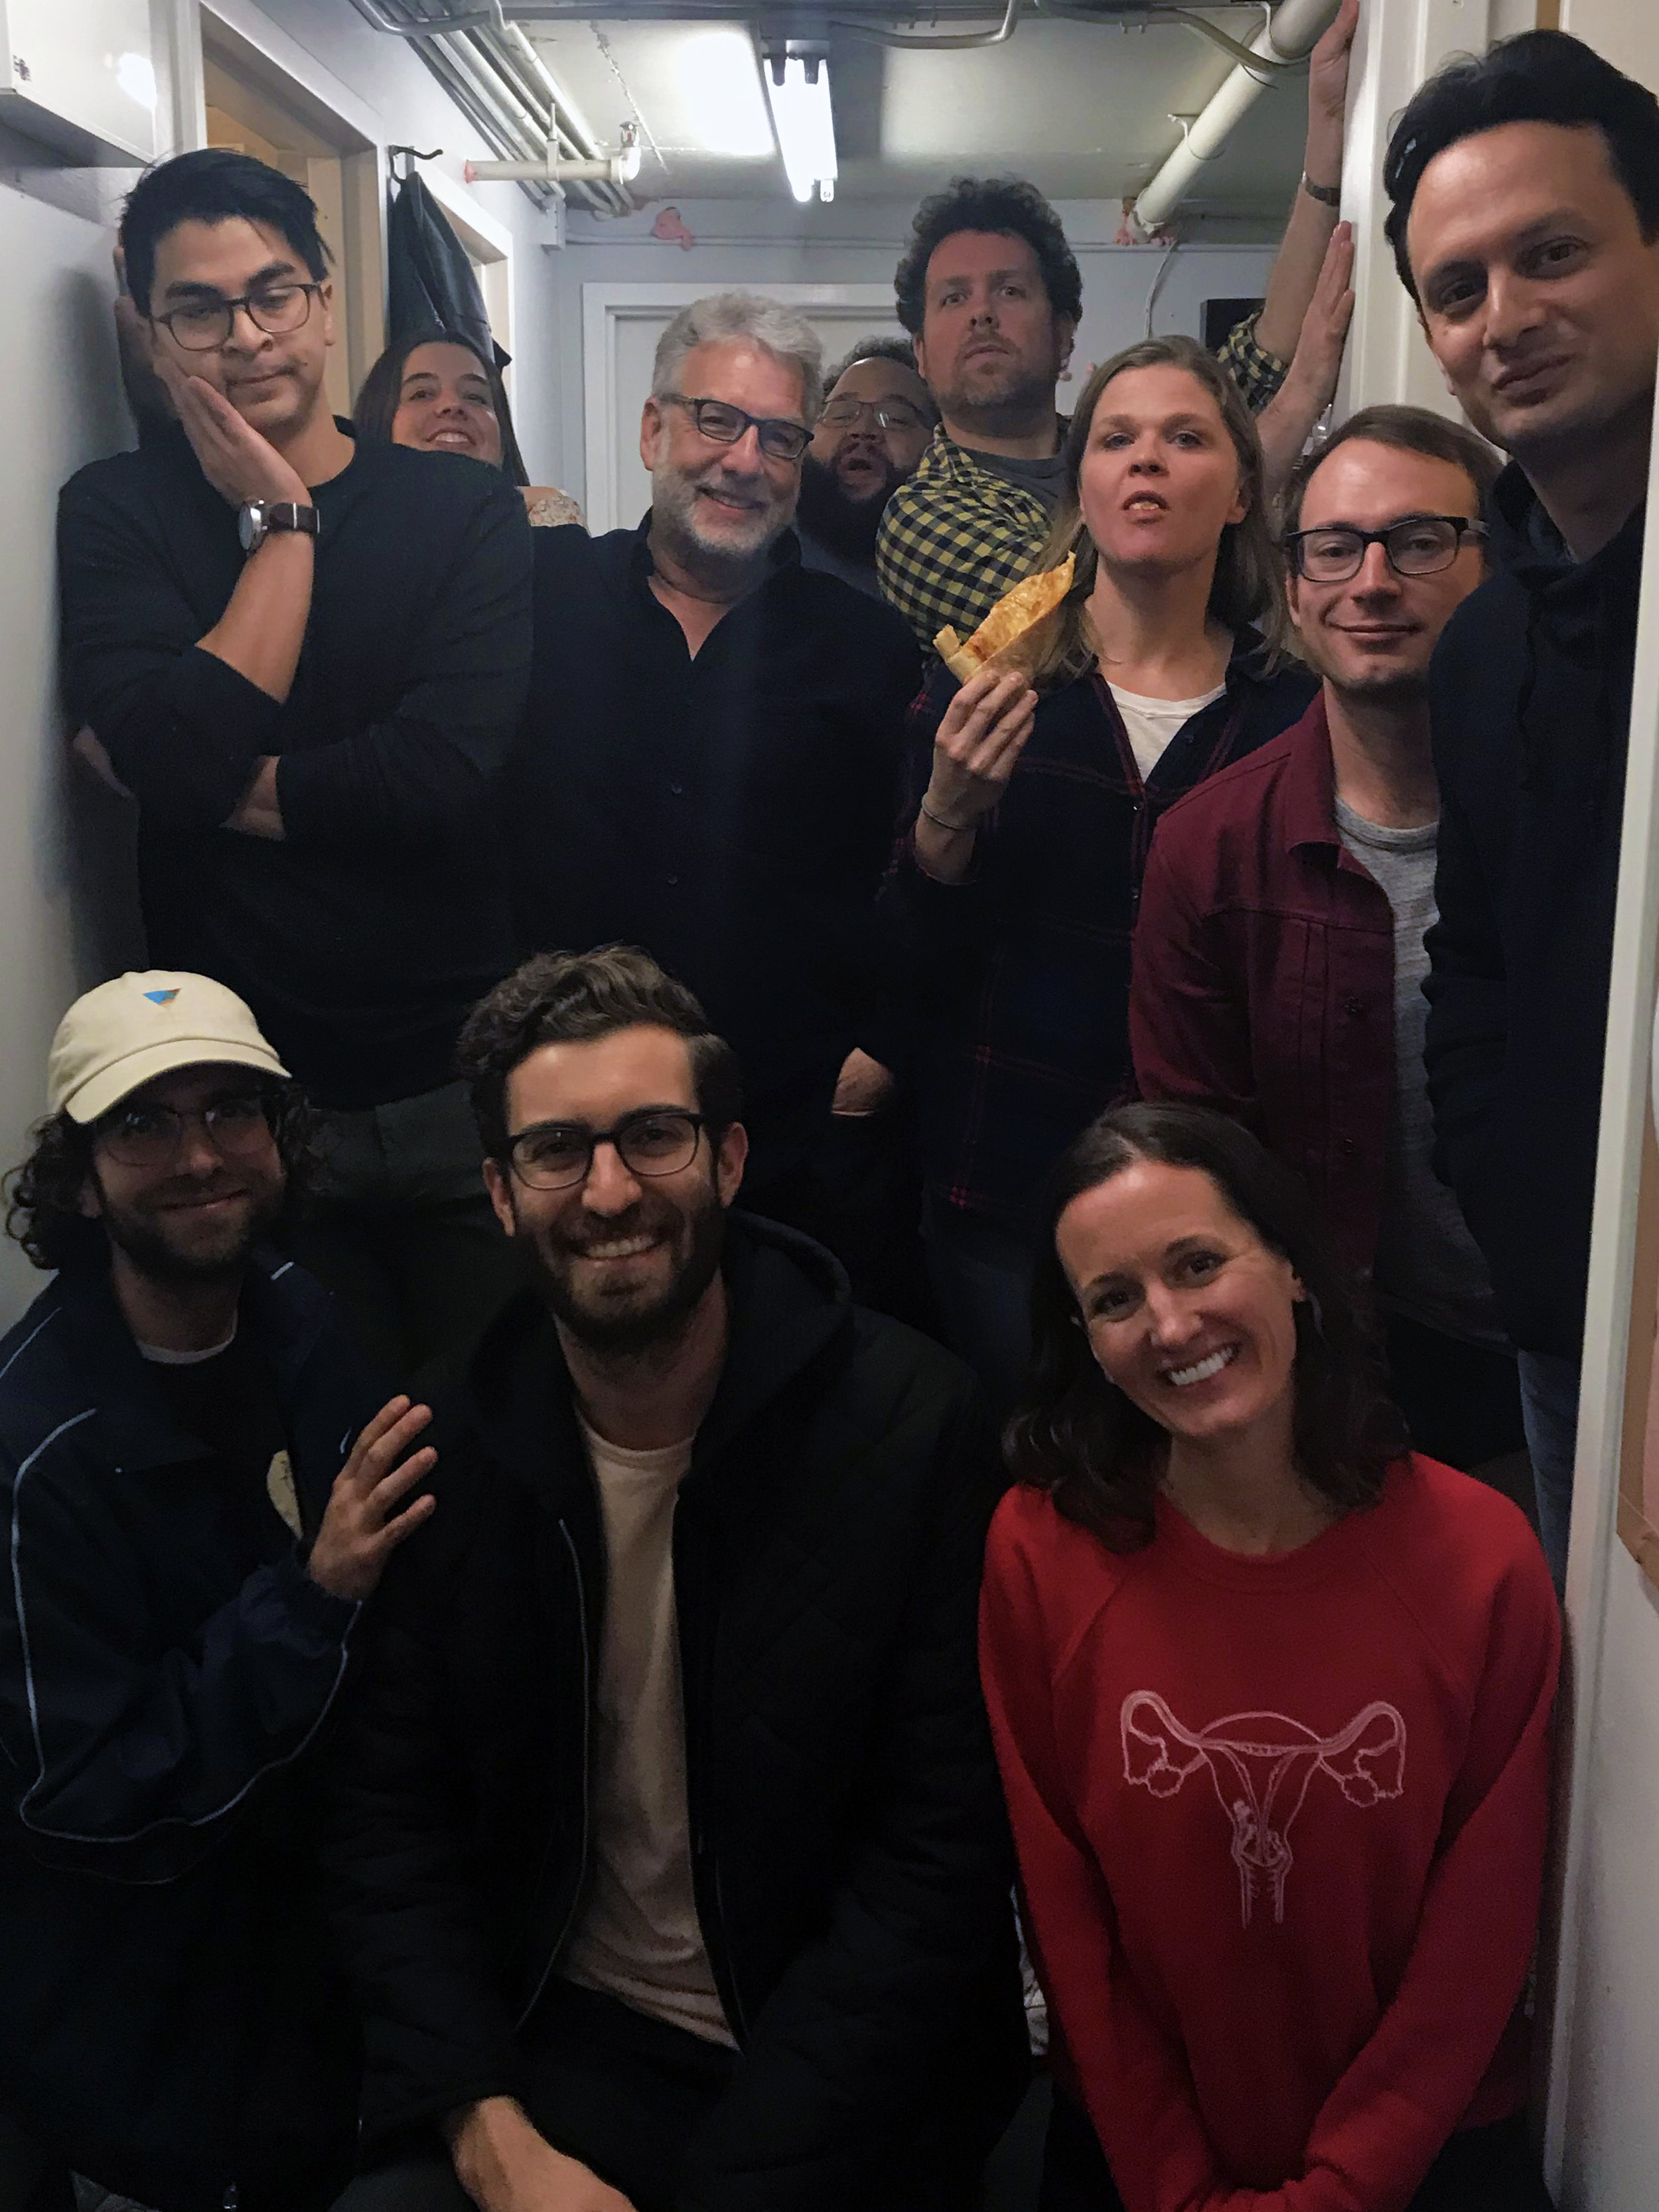 Monologists: Kyle Mooney, Dave McCary, Marc Summers